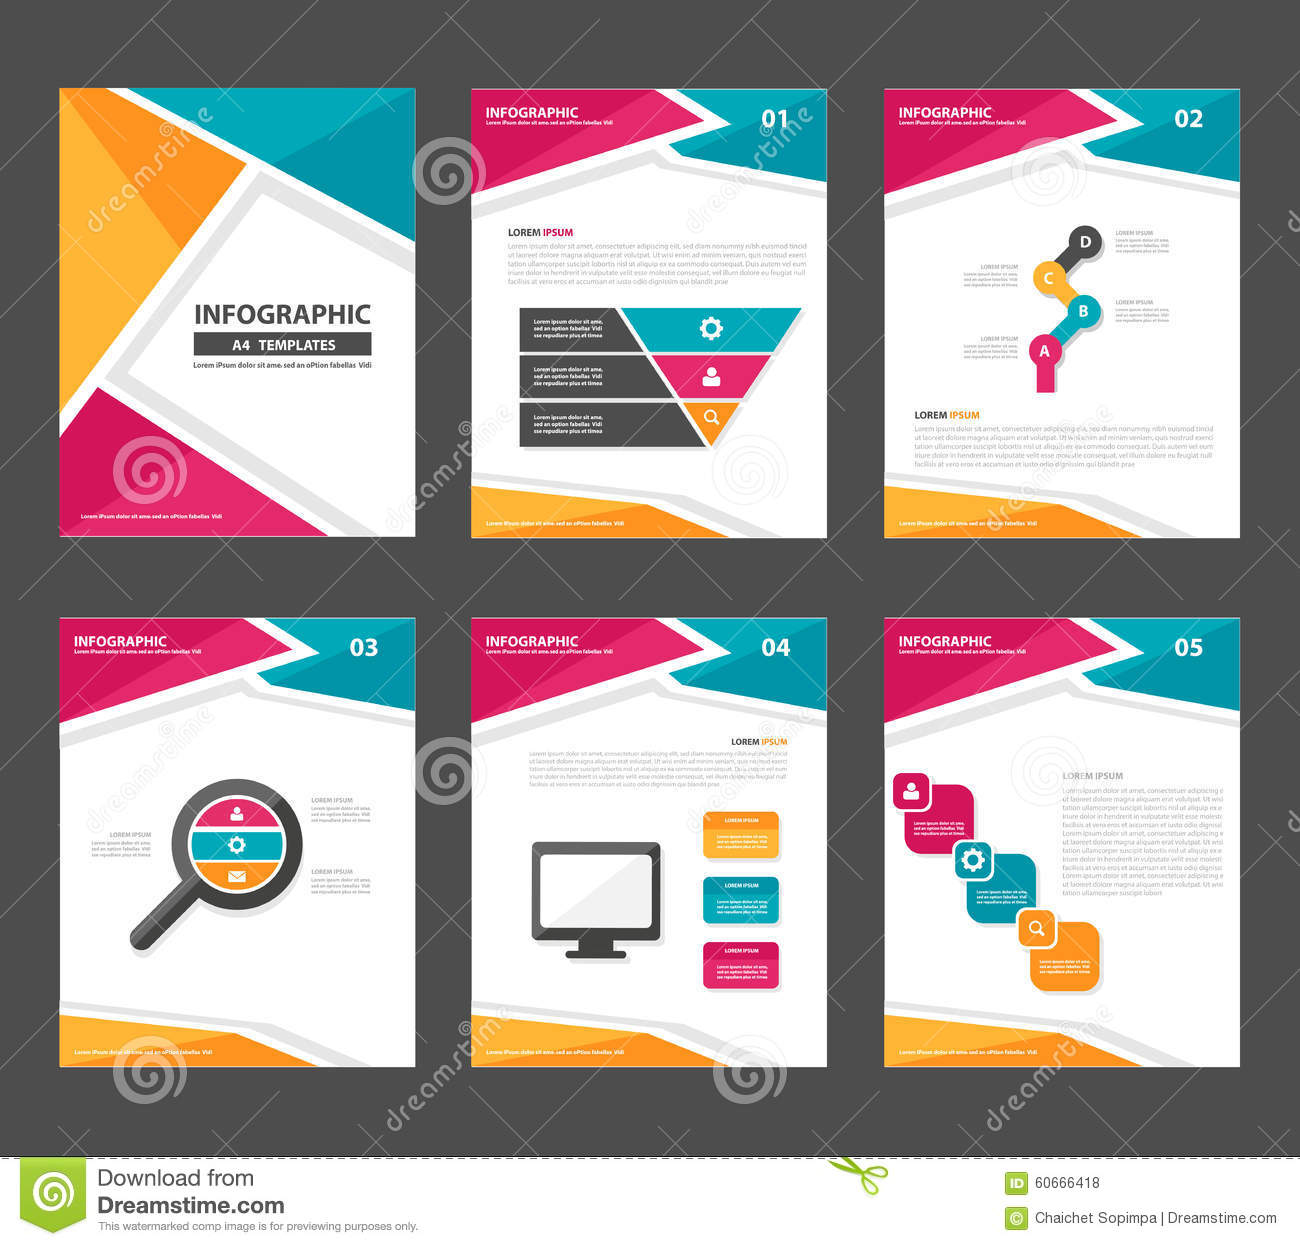 pink yellow green infographic elements presentation template flat, Templates